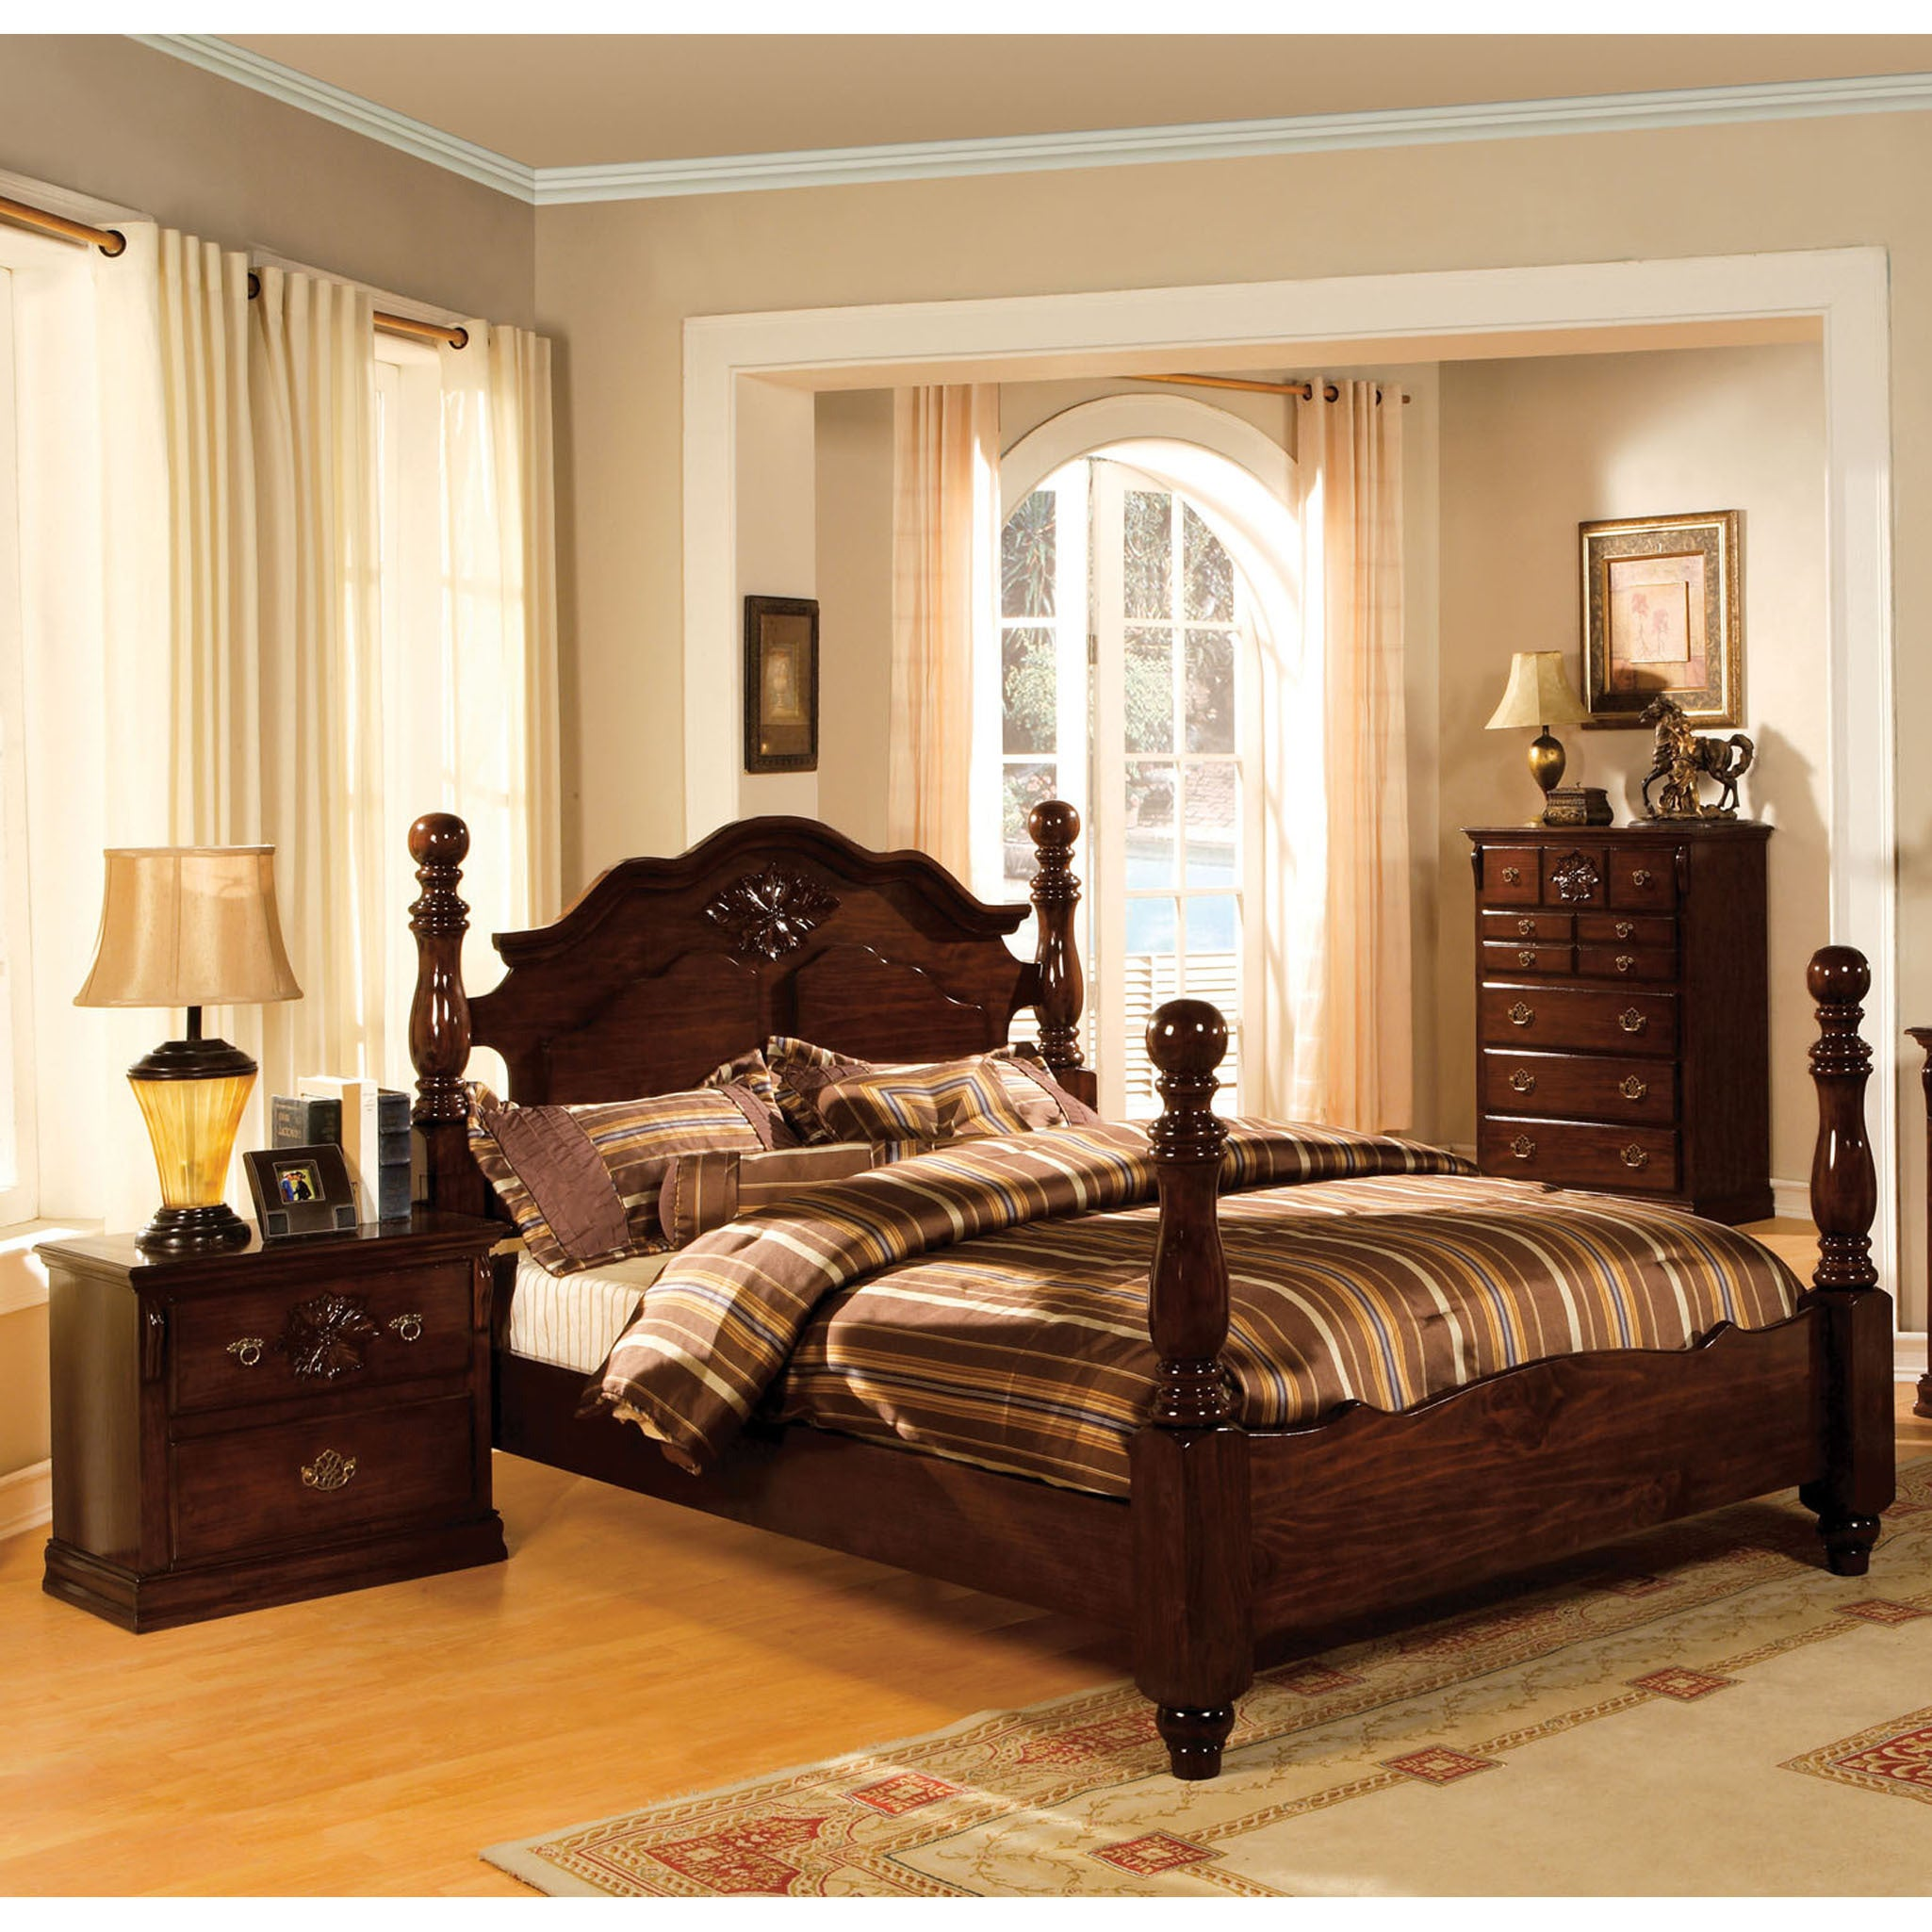 Furniture Of America Weston Traditional Style Glossy Dark Pine Four Poster Bed Free Shipping Today 9218879